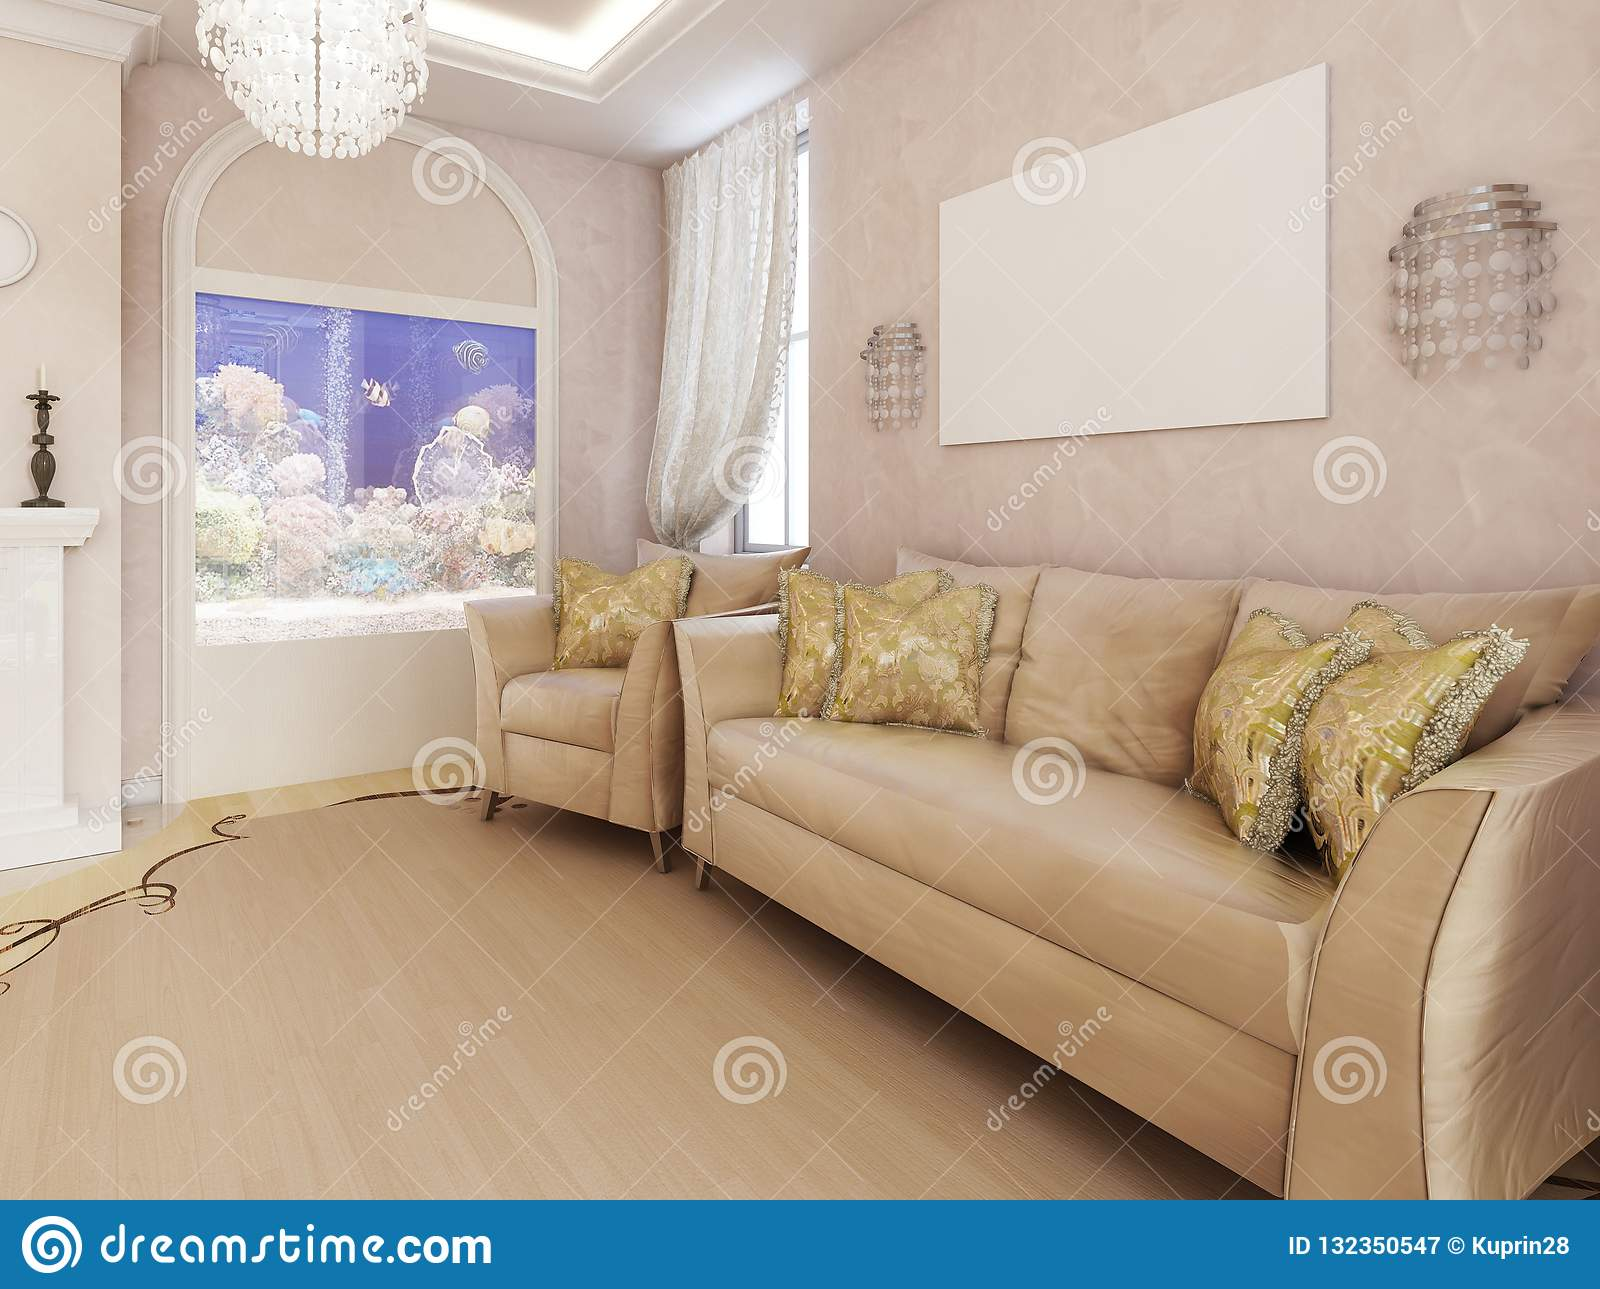 Classic Soft Furniture Near The Wall In The Living Room With A